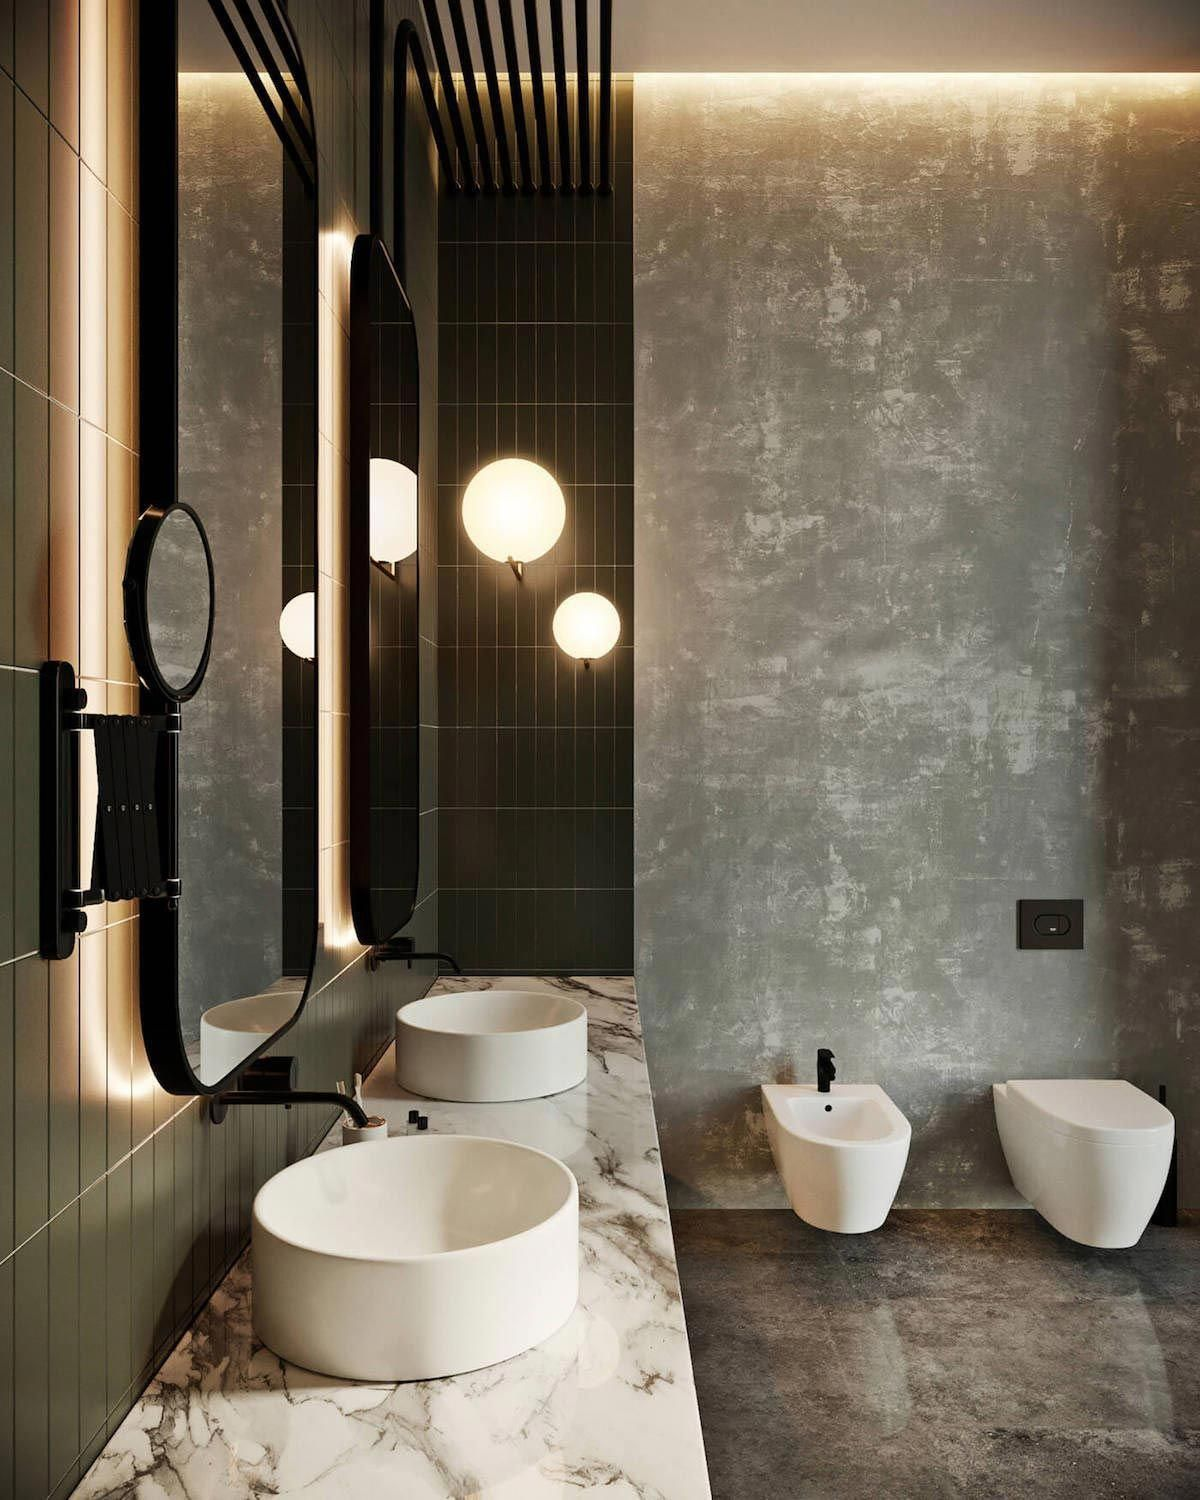 Luxurious Interior Design Created By The Various Materials And